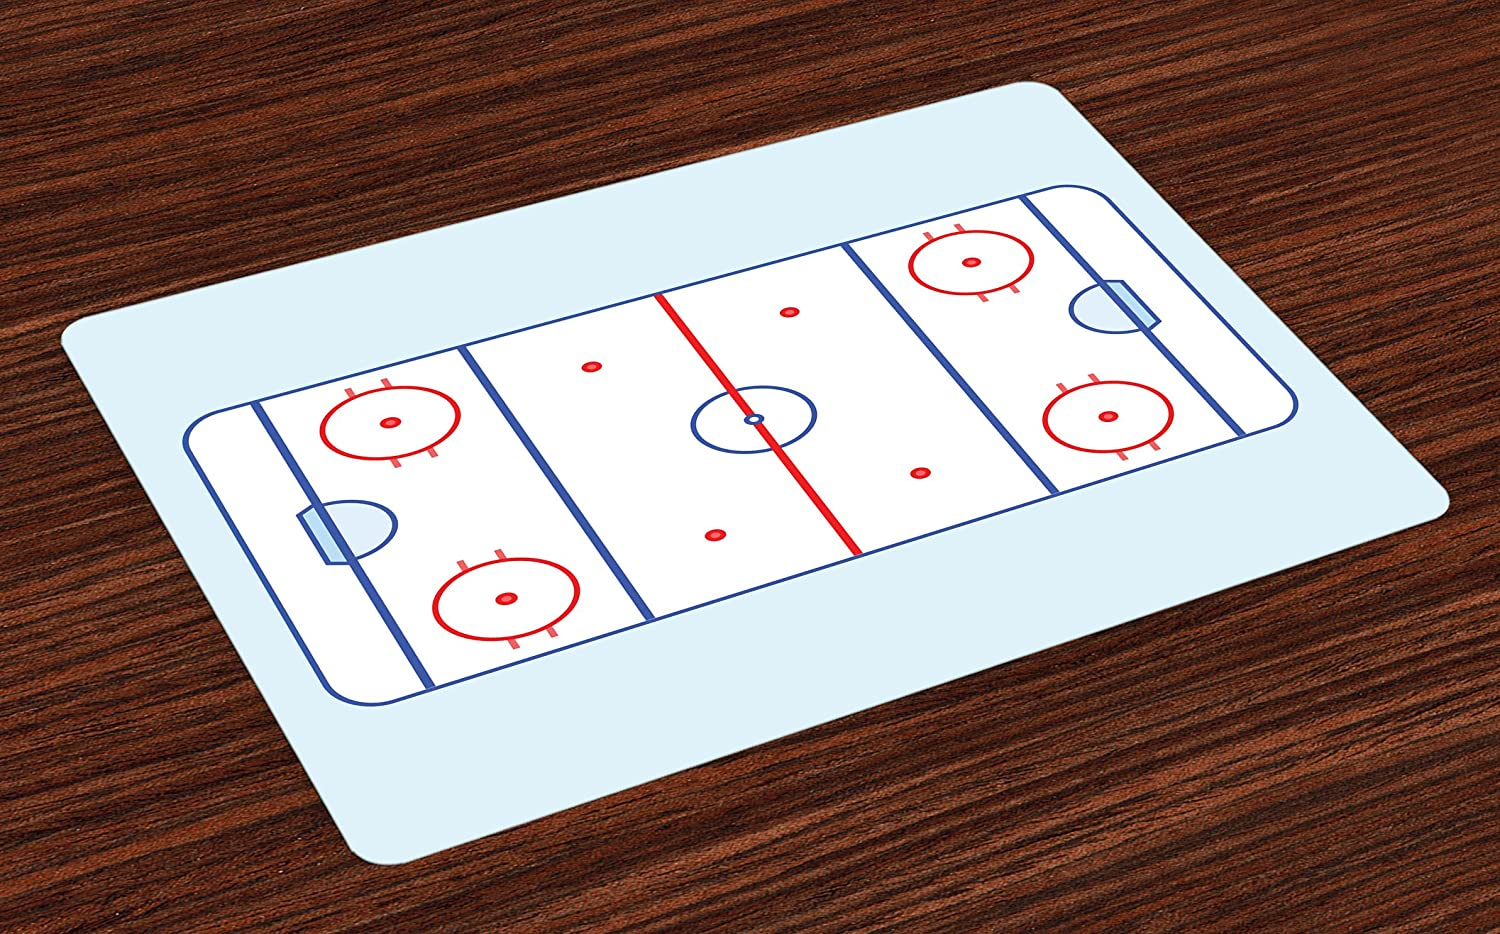 Ambesonne Hockey Place Mats Set of 4, Ice Hockey Field in Blue Tones and Red Graphic Outline for Sport Events, Washable Fabric Placemats for Dining Room Kitchen Table Decor, Blue Red Pale Blue